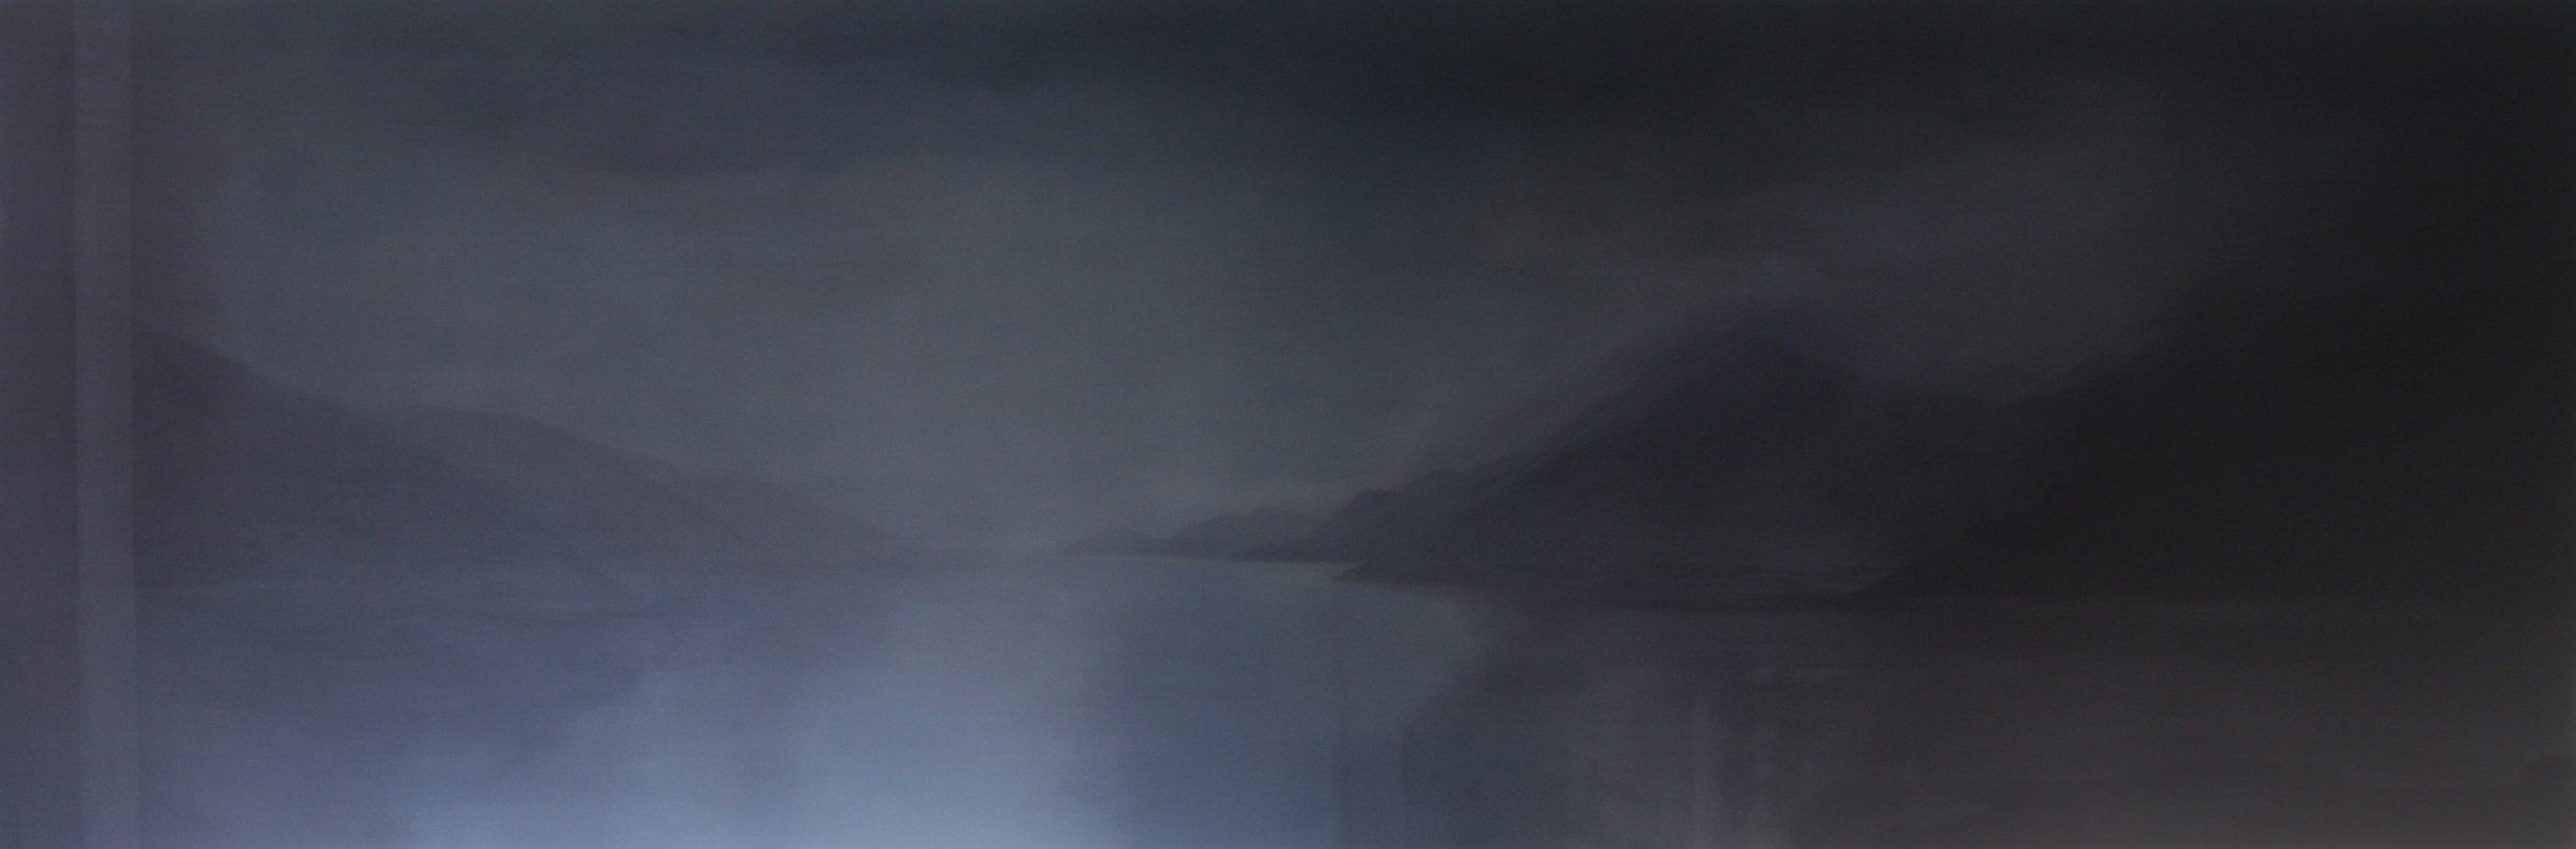 Adriane Strampp, Uncertain Histories, 2015, oil on linen, 91x274cm